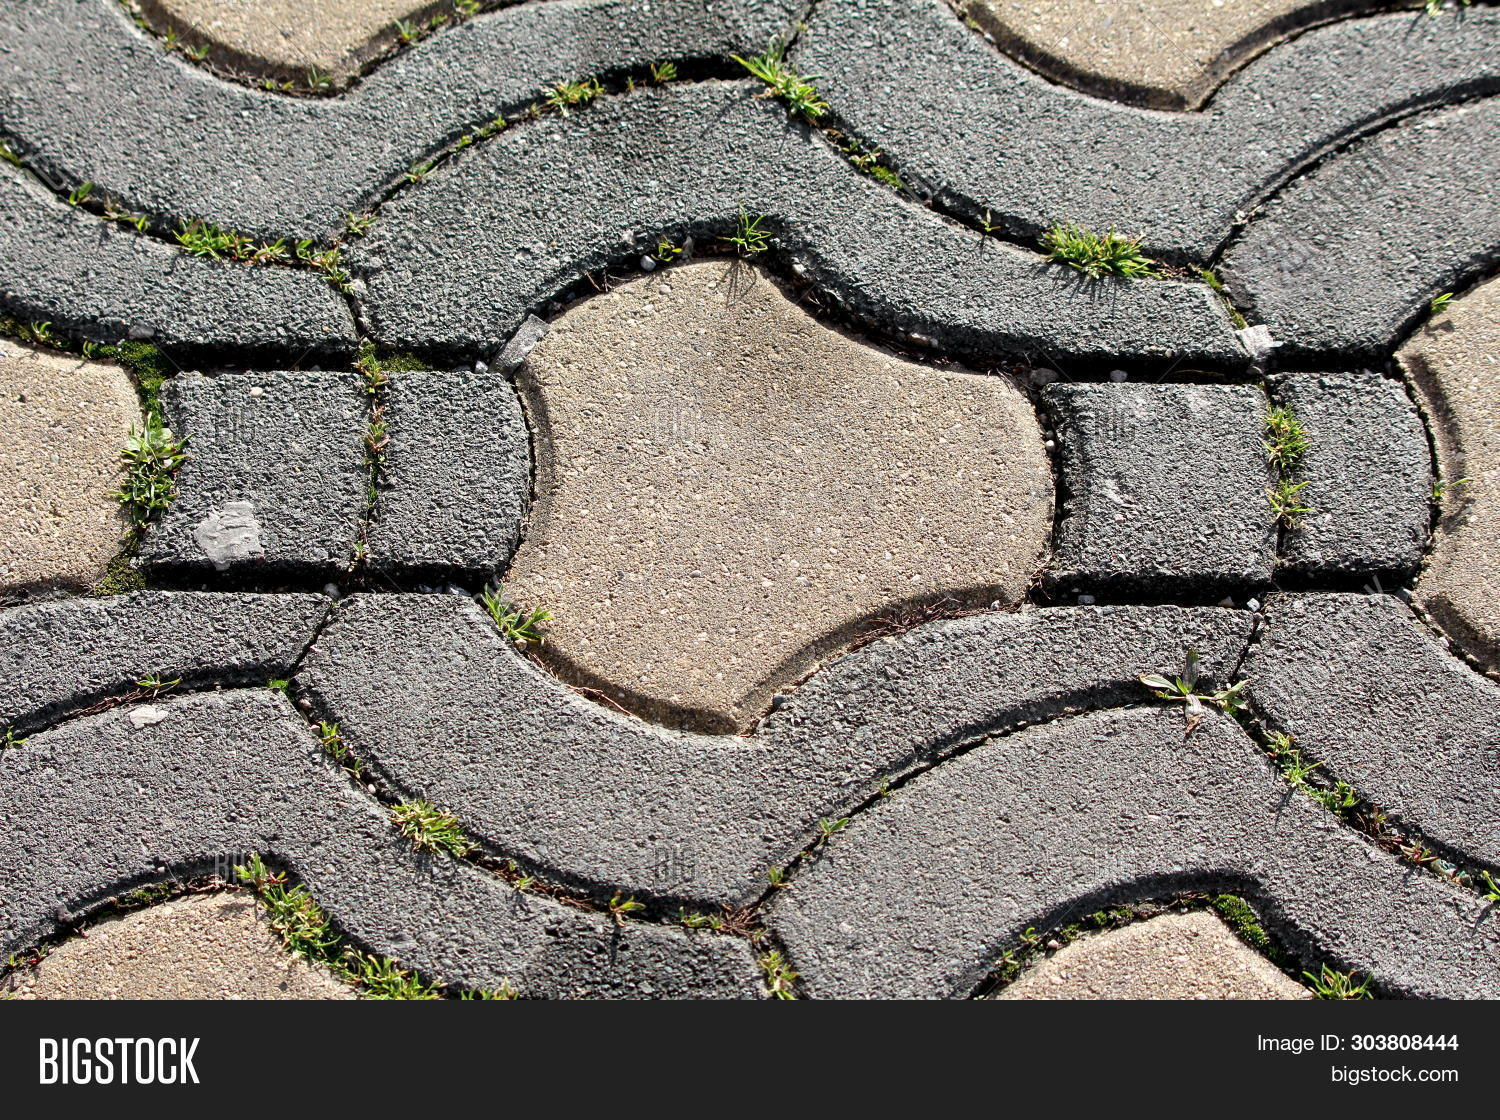 Stone Tiles Outdoor Image Photo Free Trial Bigstock